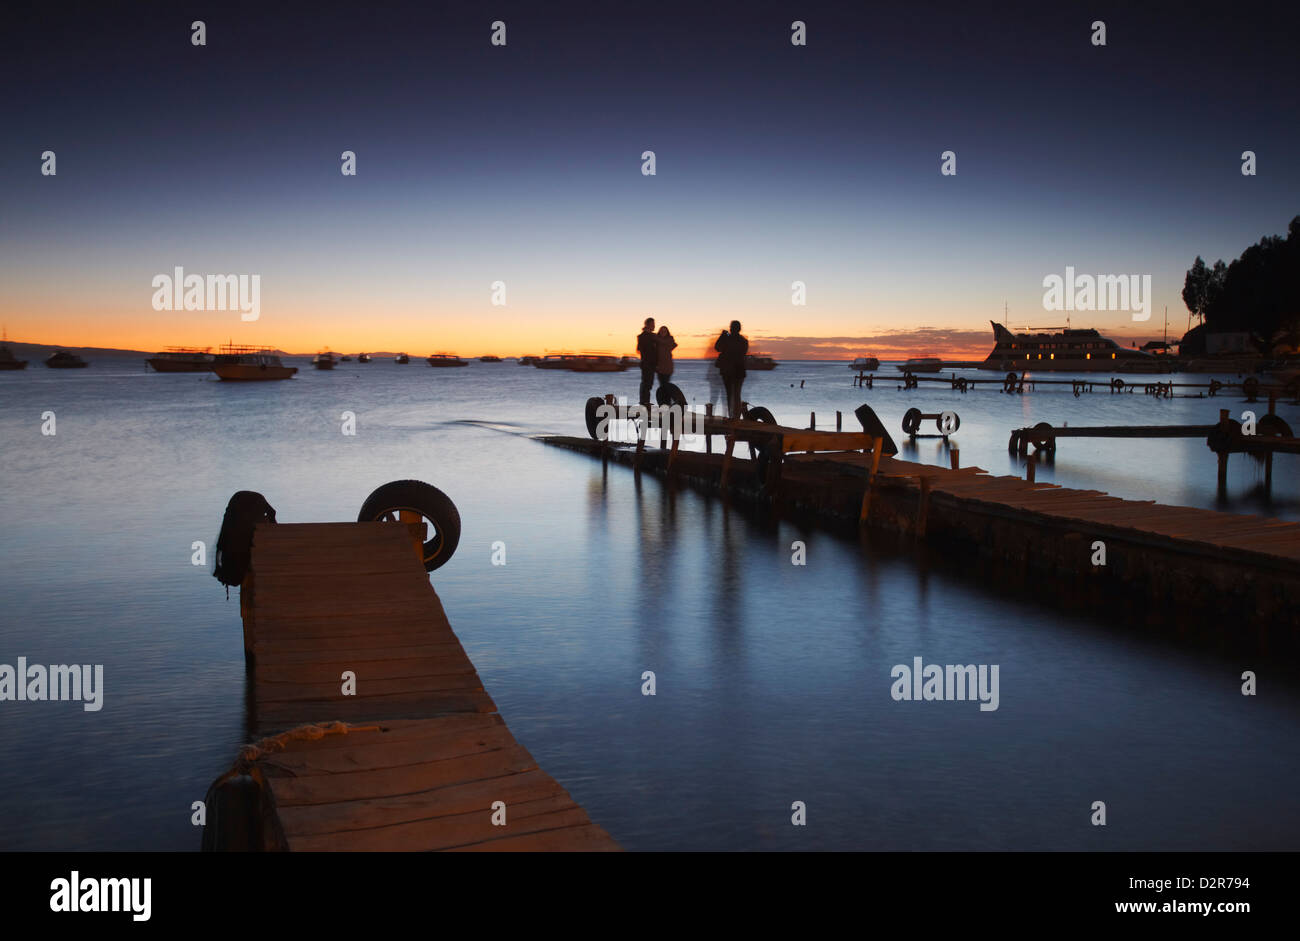 People standing on pier at sunset, Copacabana, Lake Titicaca, Bolivia, South America - Stock Image